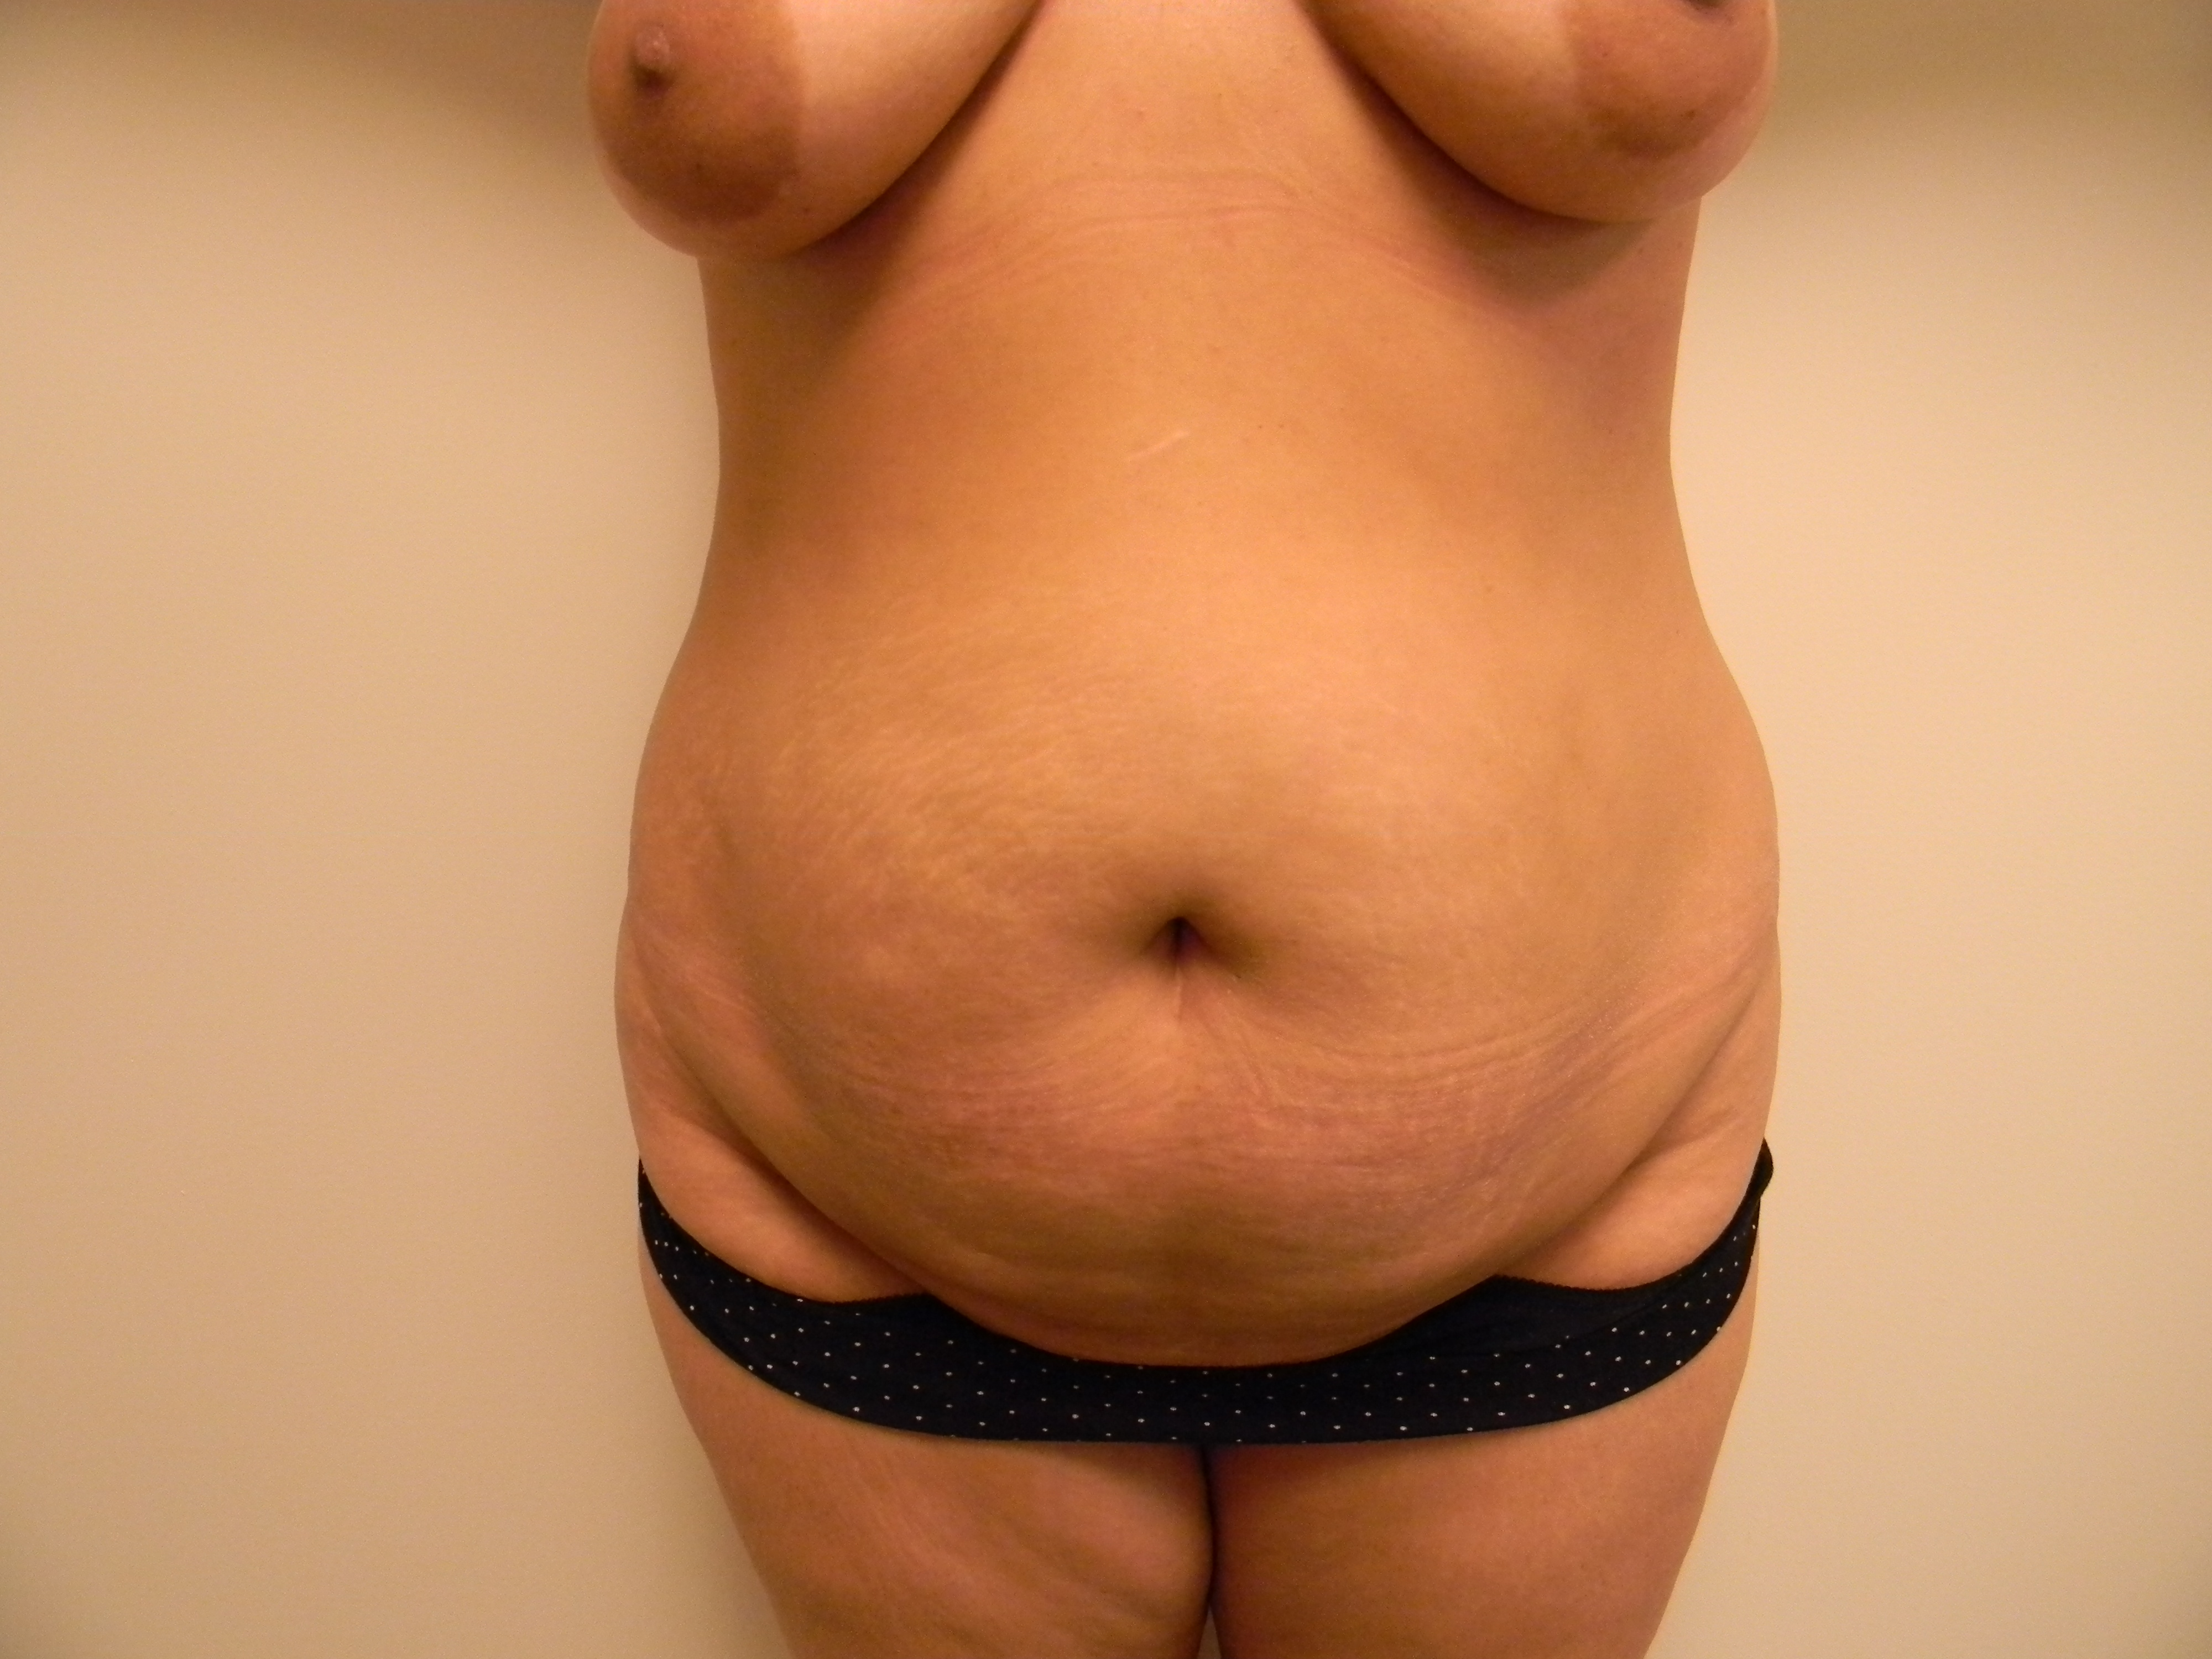 Tummy Tuck Before and After Pictures Nashville, TN